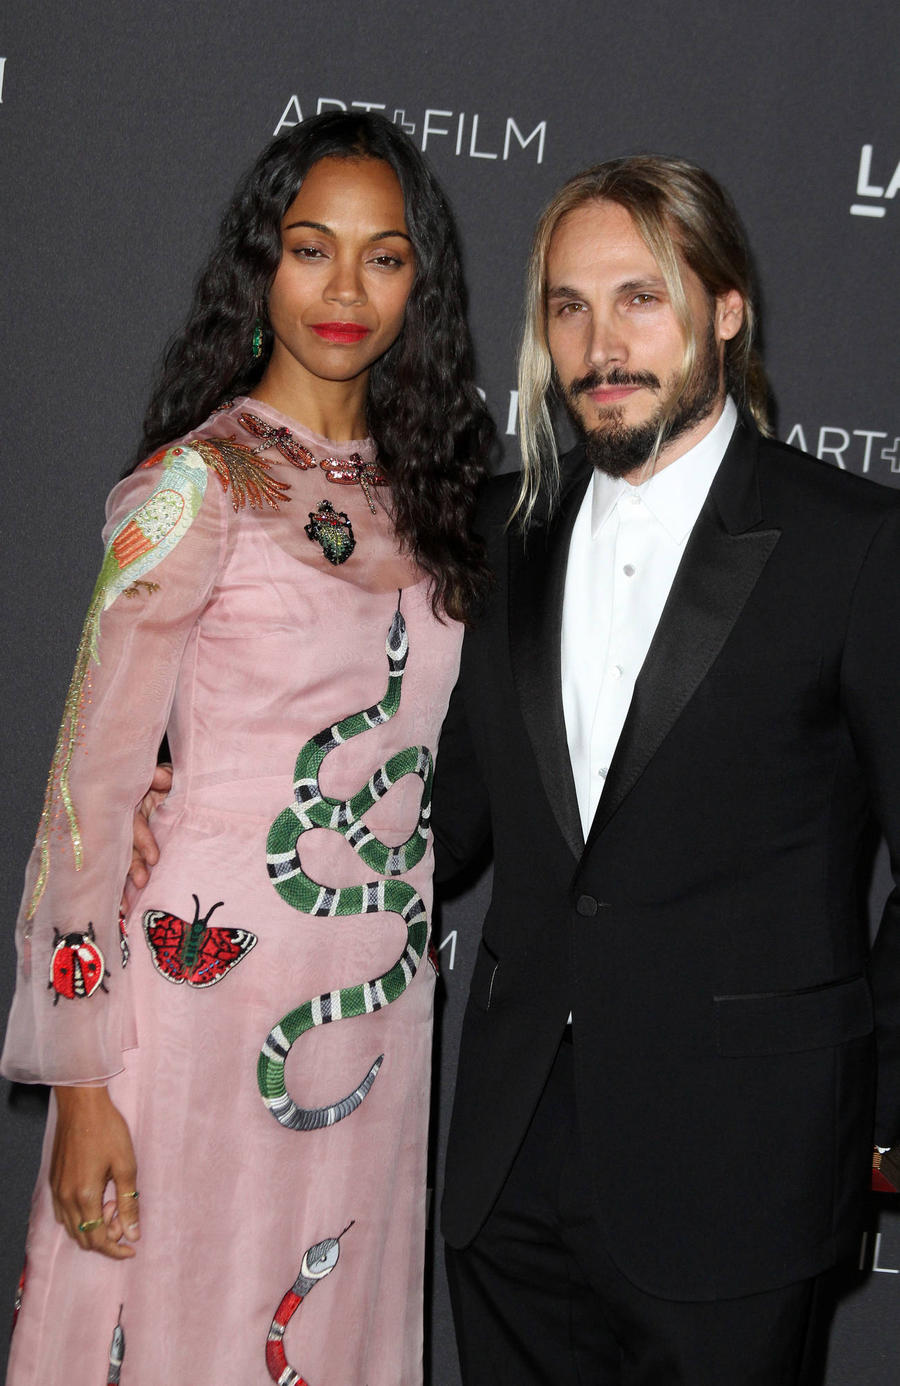 Zoe Saldana Gets Tattoo Of Husband's Face On Torso